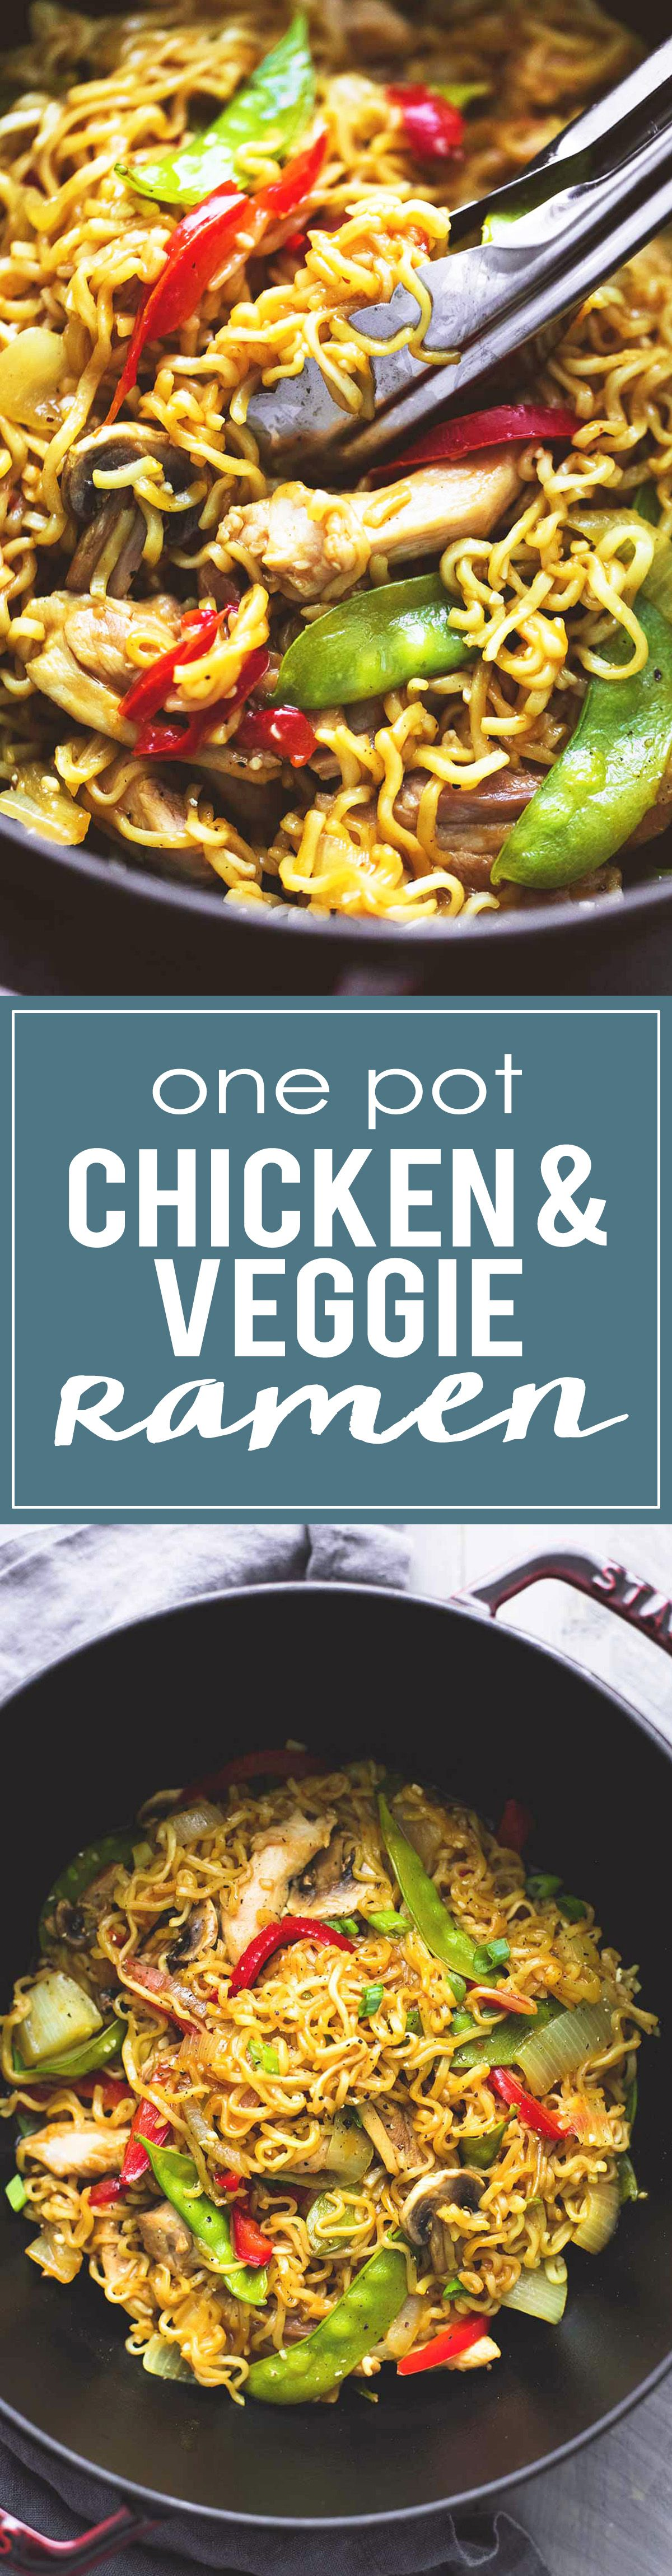 Easy One Pot Chicken & Veggie Ramen is ready in less than 30 minutes and customizable with any of your favorite veggies.   lecremedelacrumb.com